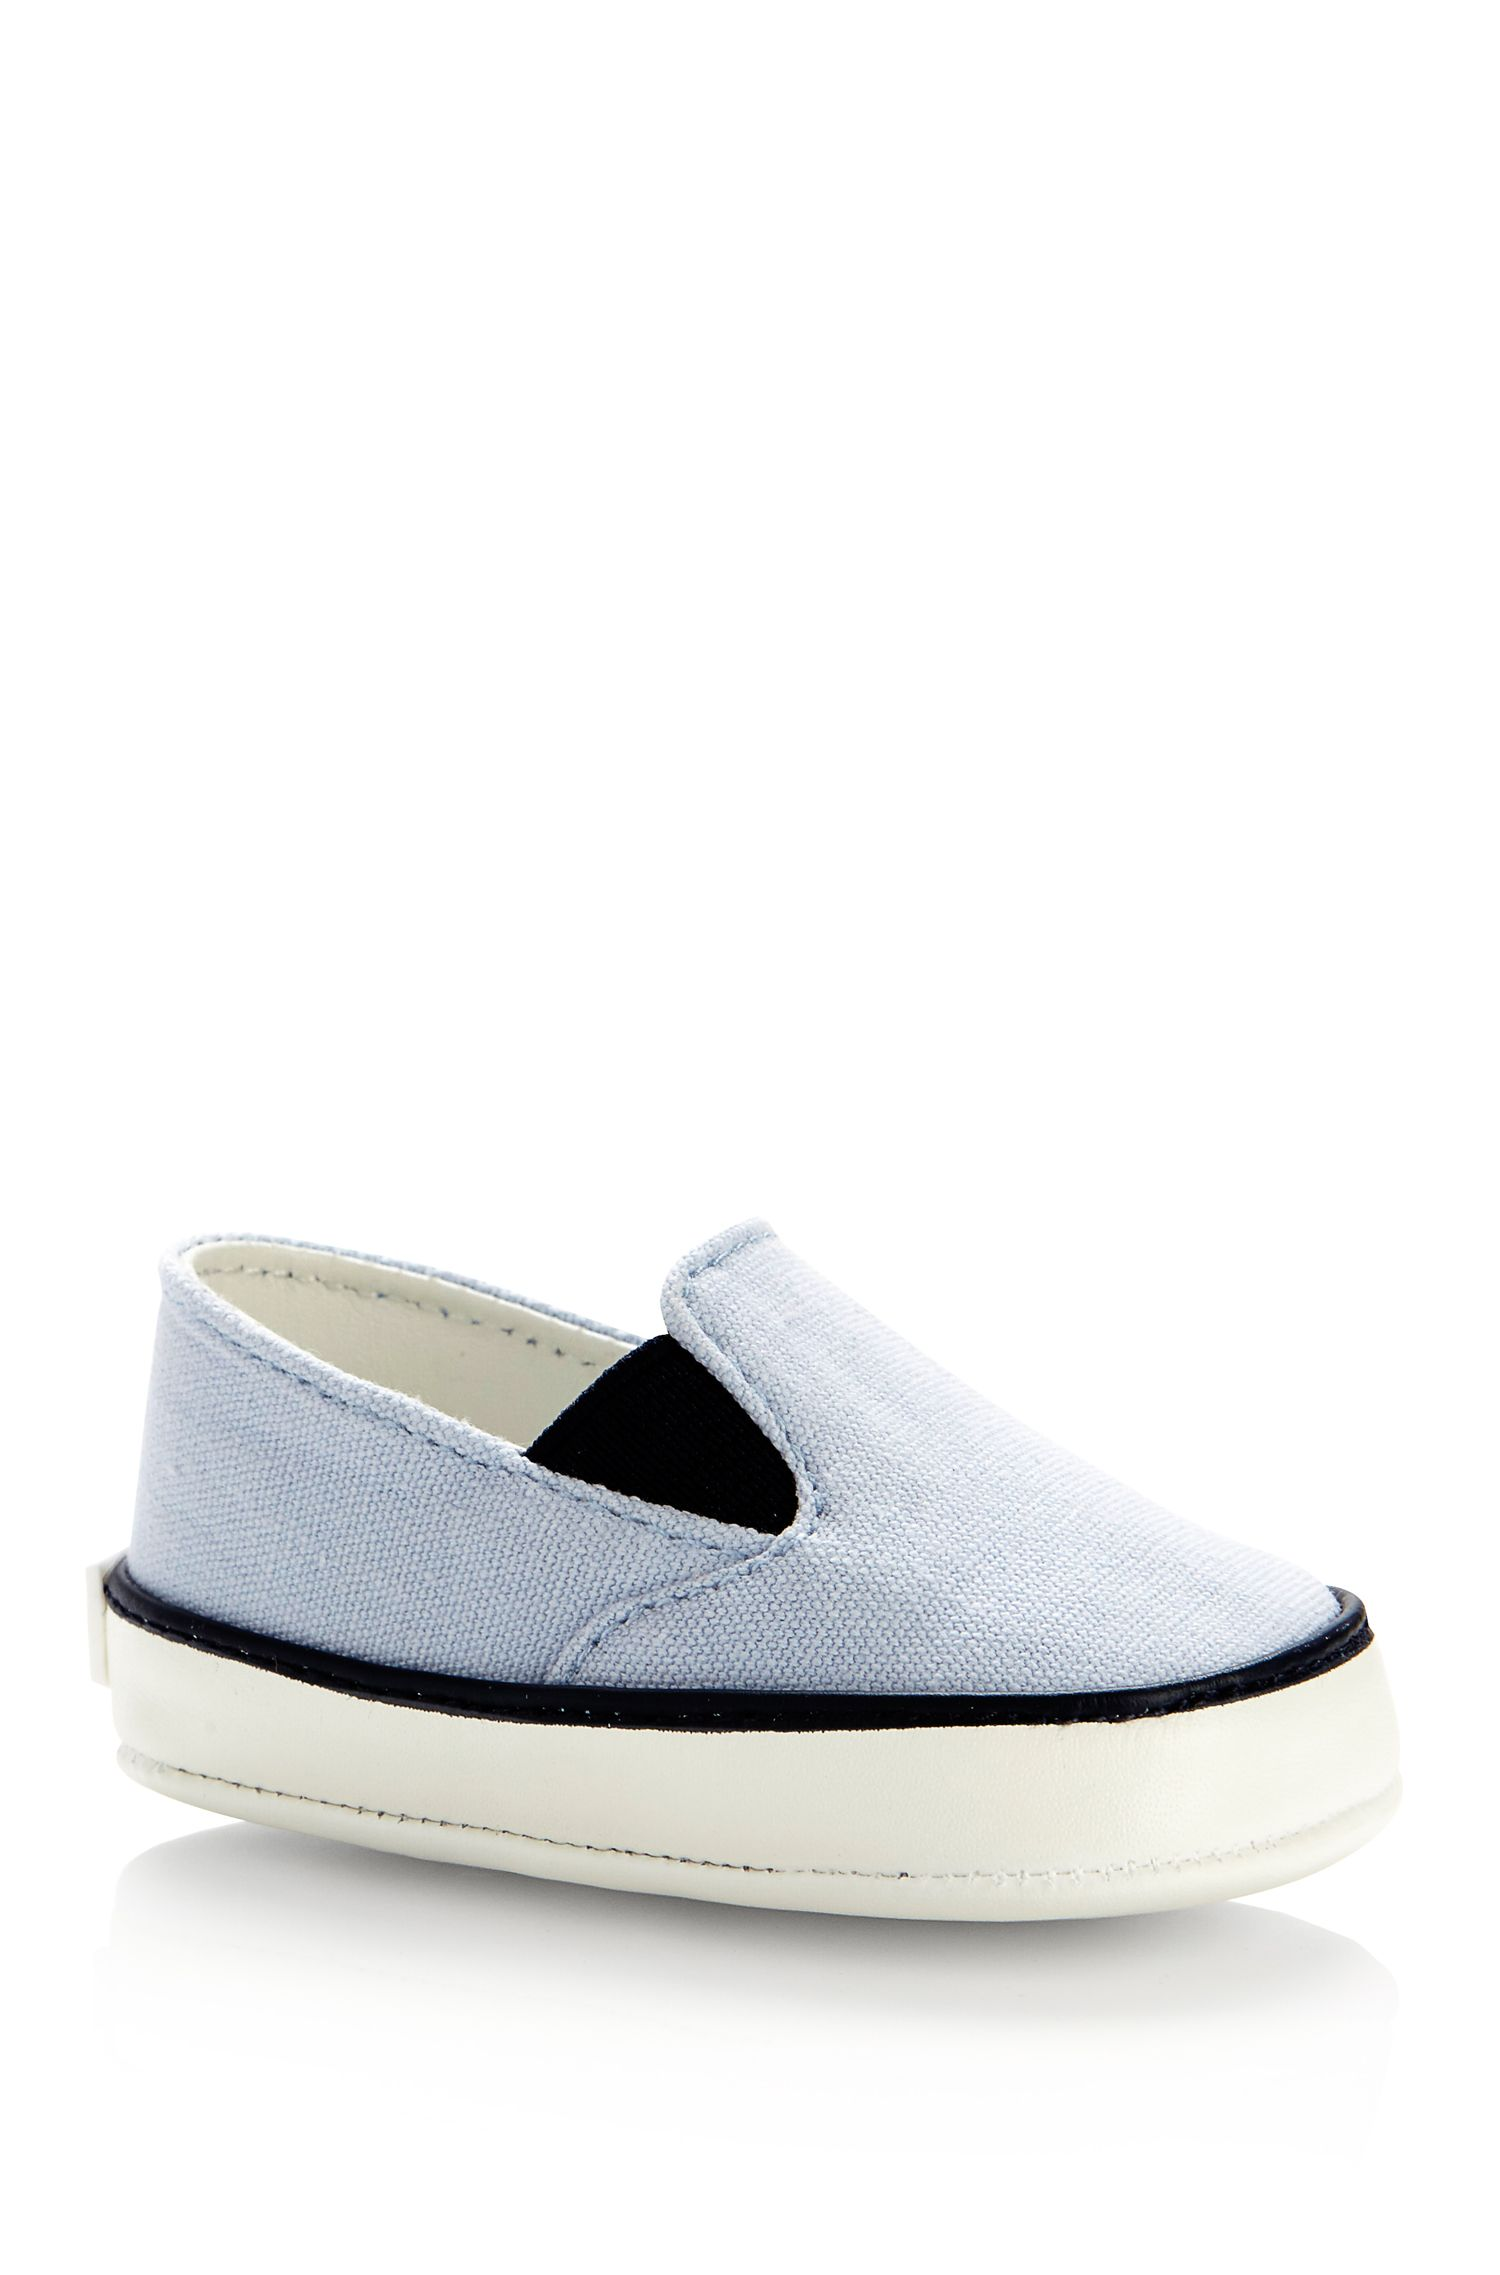 'J99044' | Newborn Canvas Slip-Ons